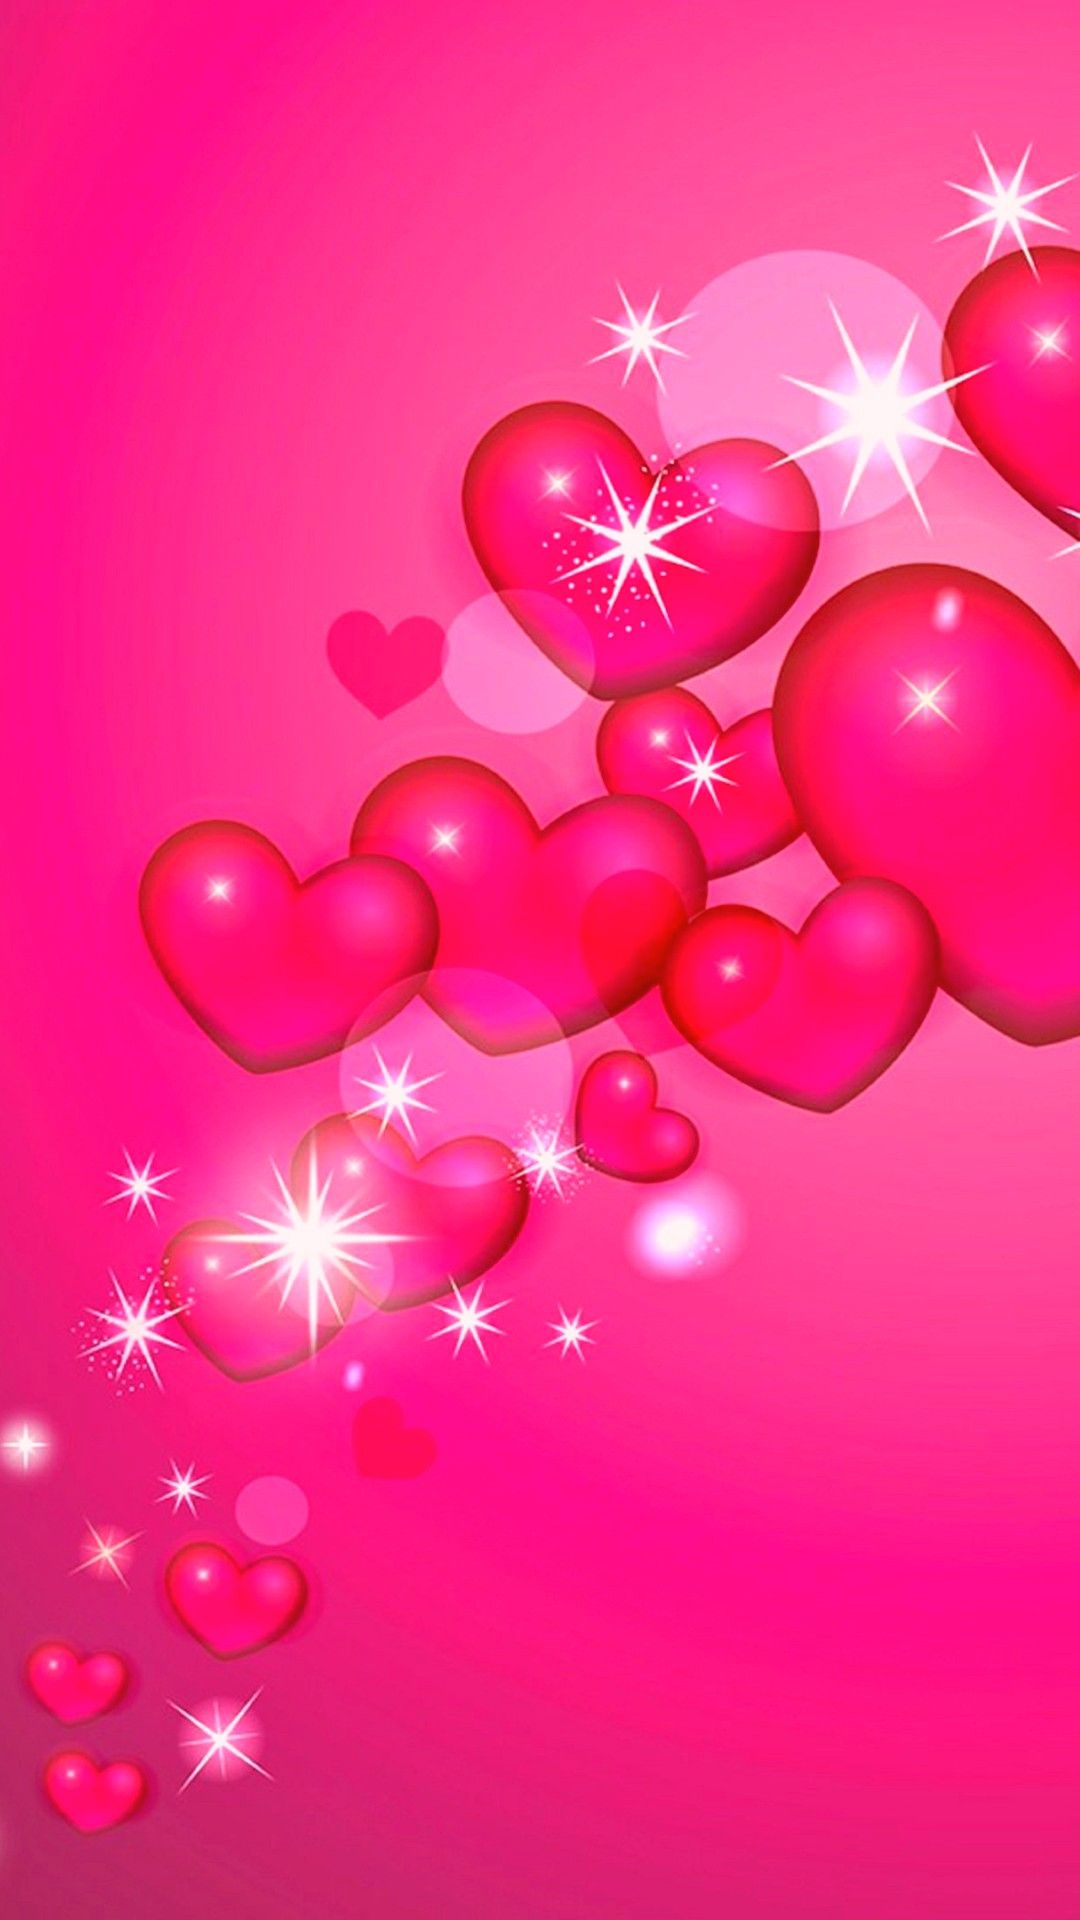 Valentines Day Hearts Wallpapers 1080x1920 Heart Wallpaper Valentines Day Hearts Love Wallpaper Download Heart wallpaper hd 1080p free download